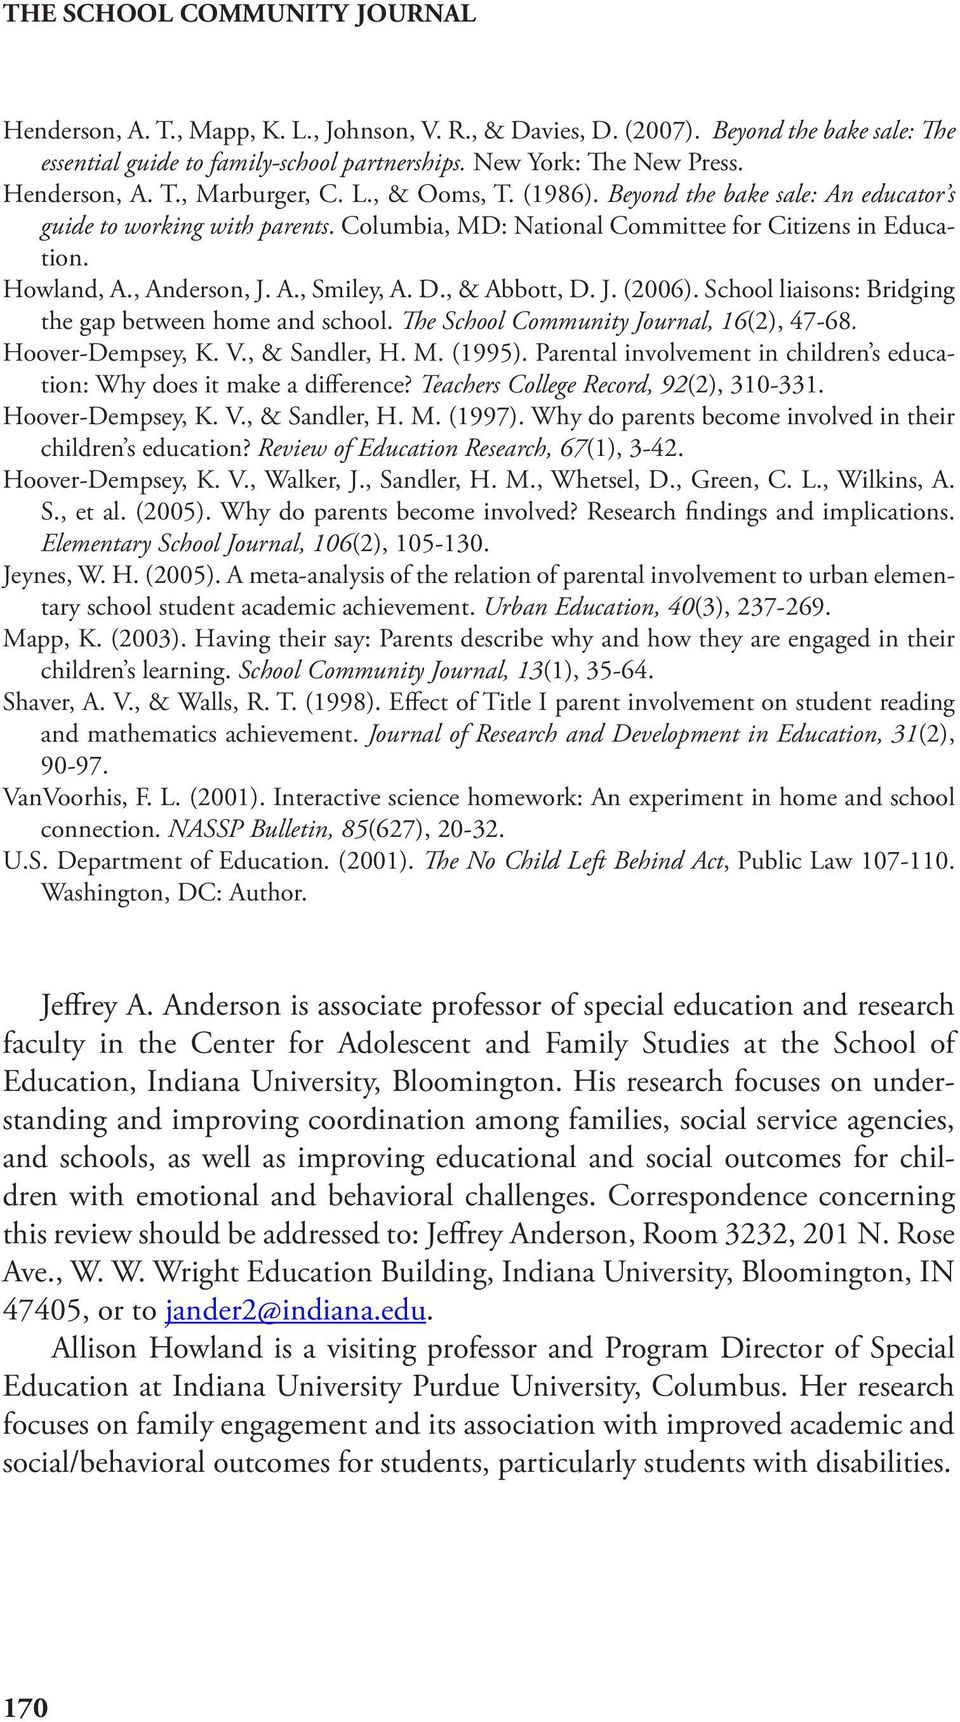 , Anderson, J. A., Smiley, A. D., & Abbott, D. J. (2006). School liaisons: Bridging the gap between home and school. The School Community Journal, 16(2), 47-68. Hoover-Dempsey, K. V., & Sandler, H. M.